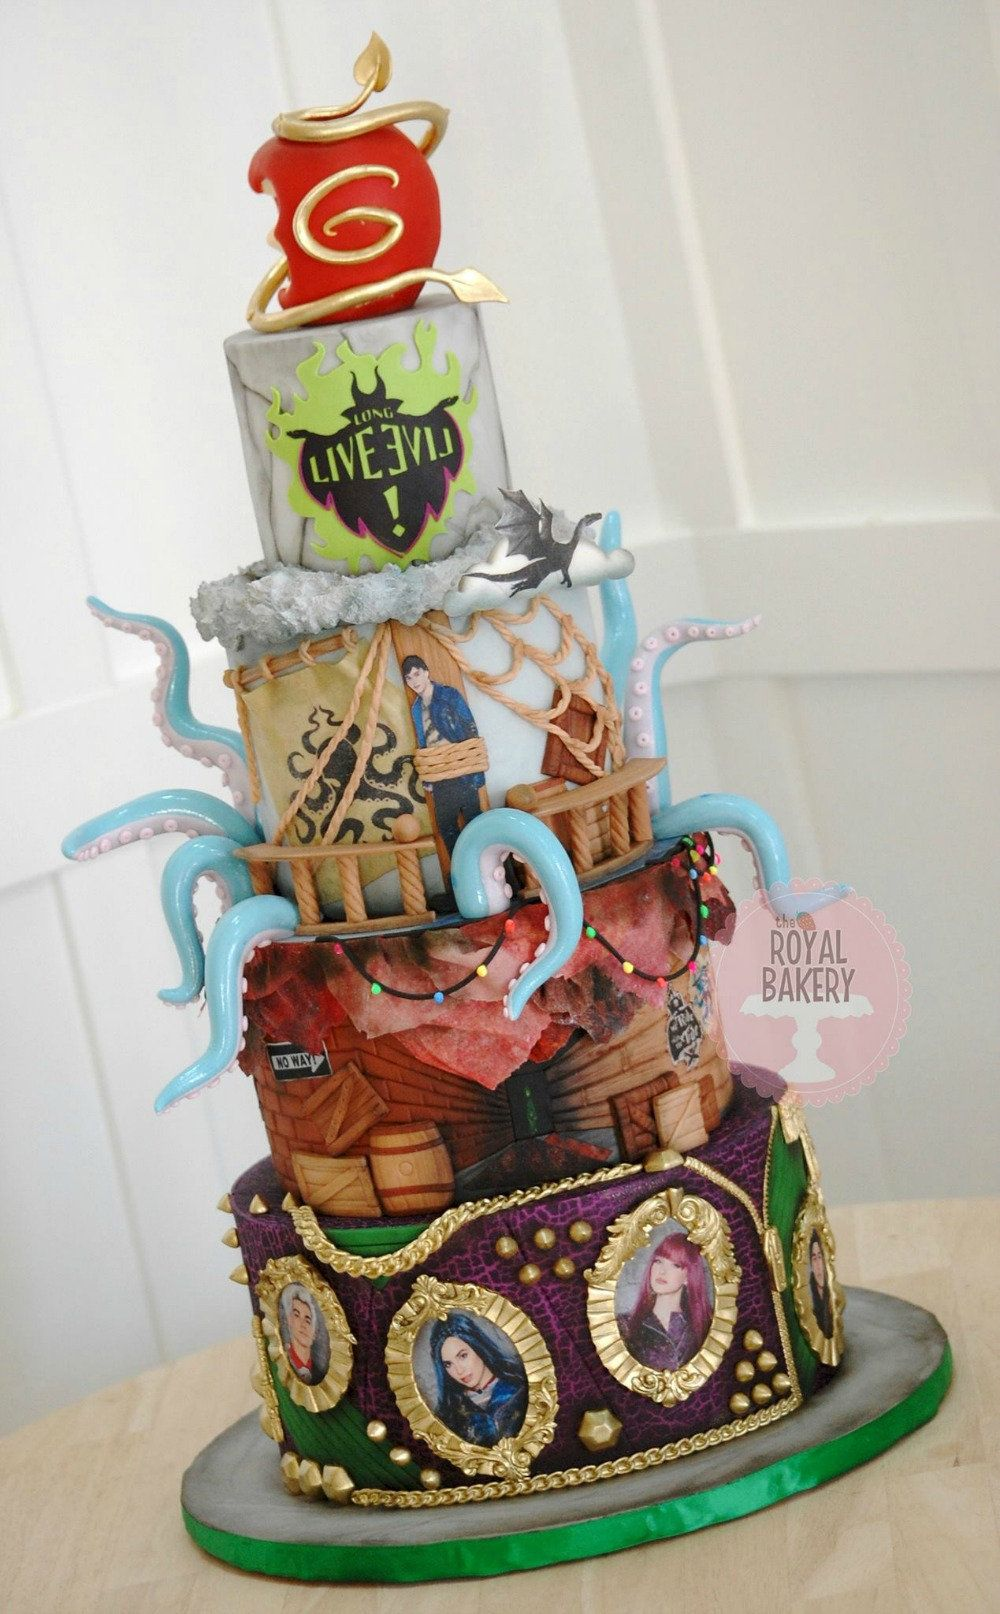 She Cracked The Crackle With Images Descendants Cake